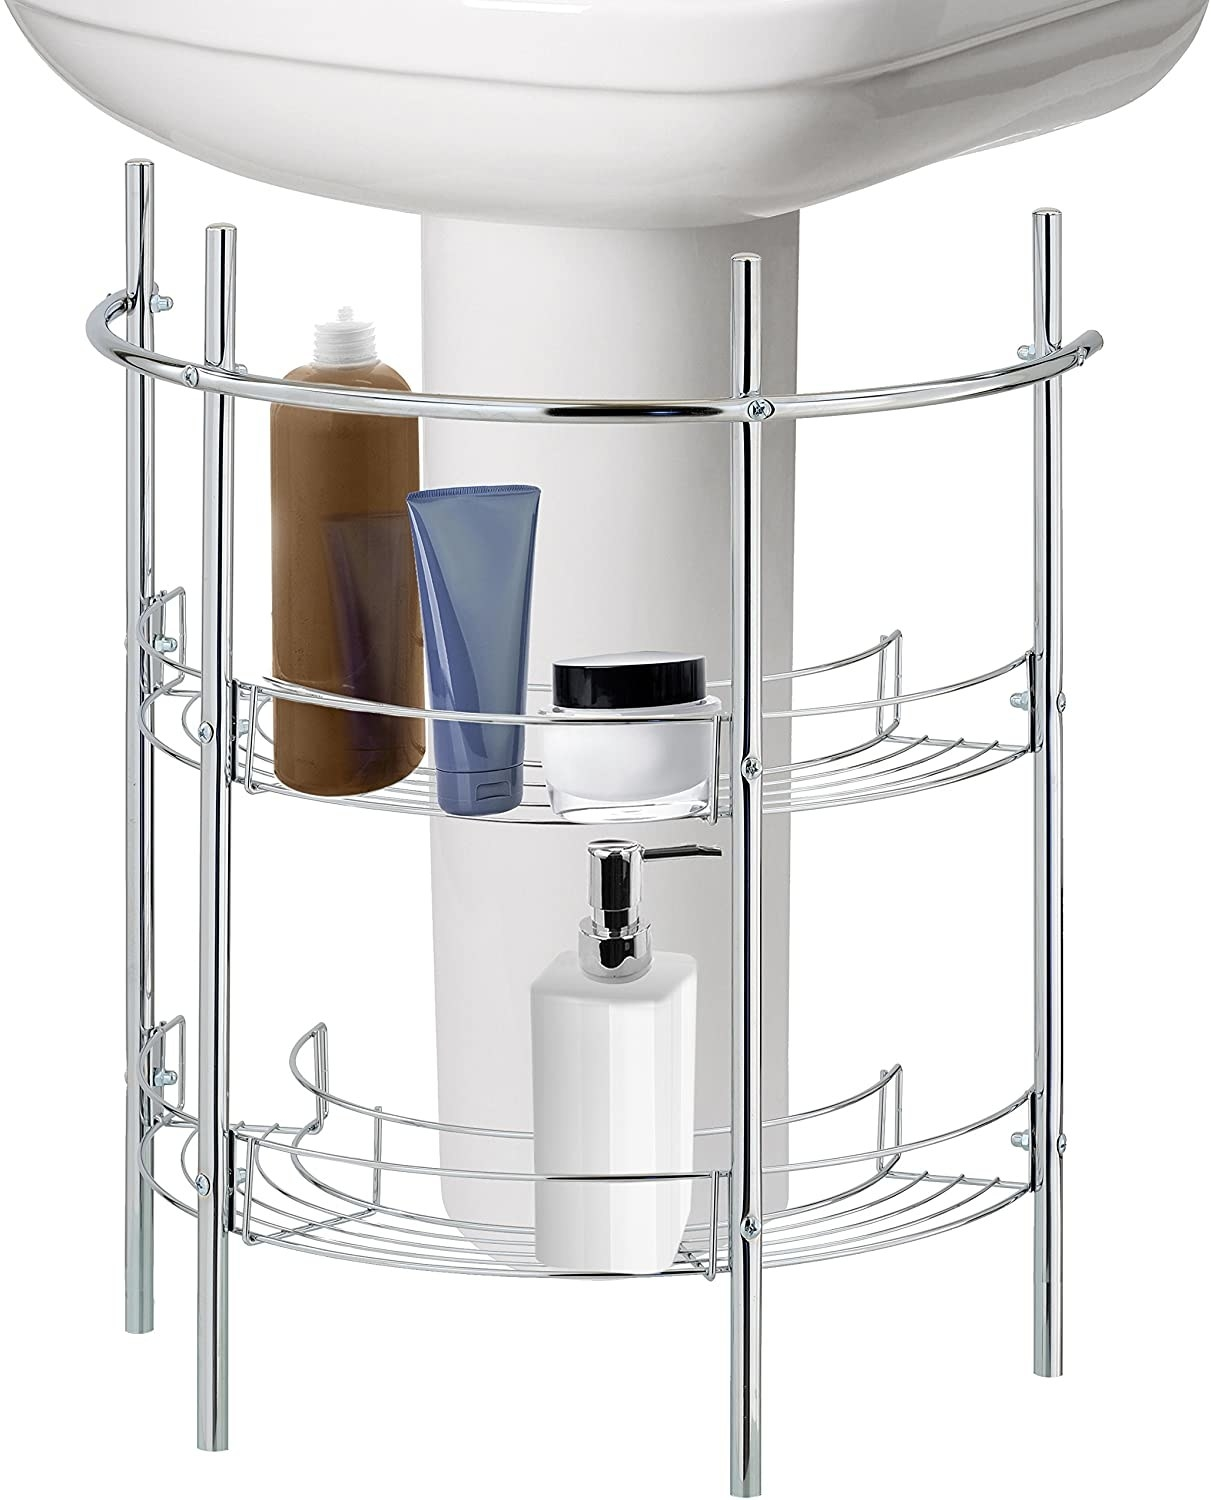 A two tiered metal storage rack in a curved shape that fits right underneath a bathroom sink